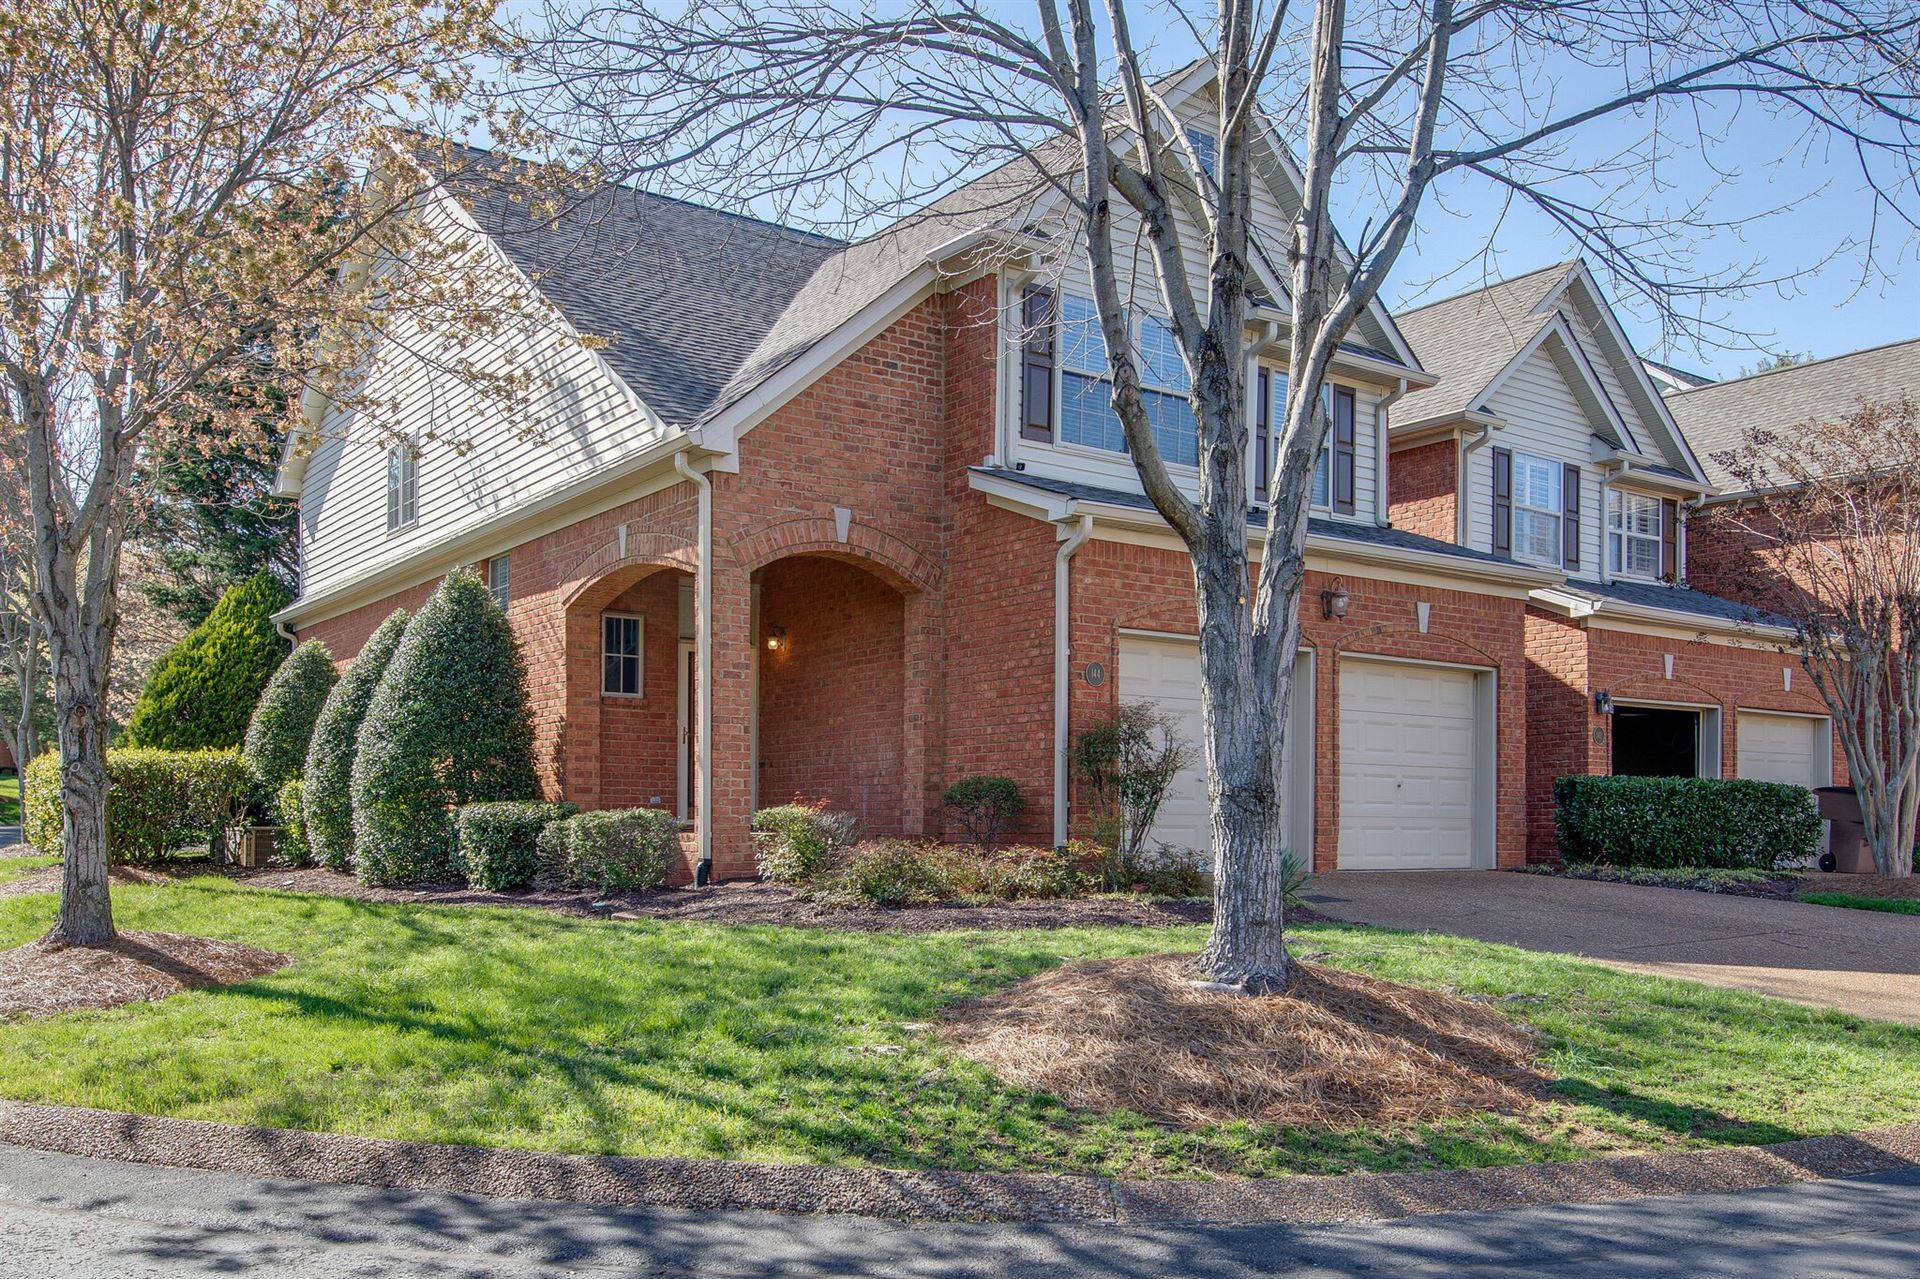 641 Old Hickory Blvd #144, Brentwood, TN 37027 - MLS#: 2241655